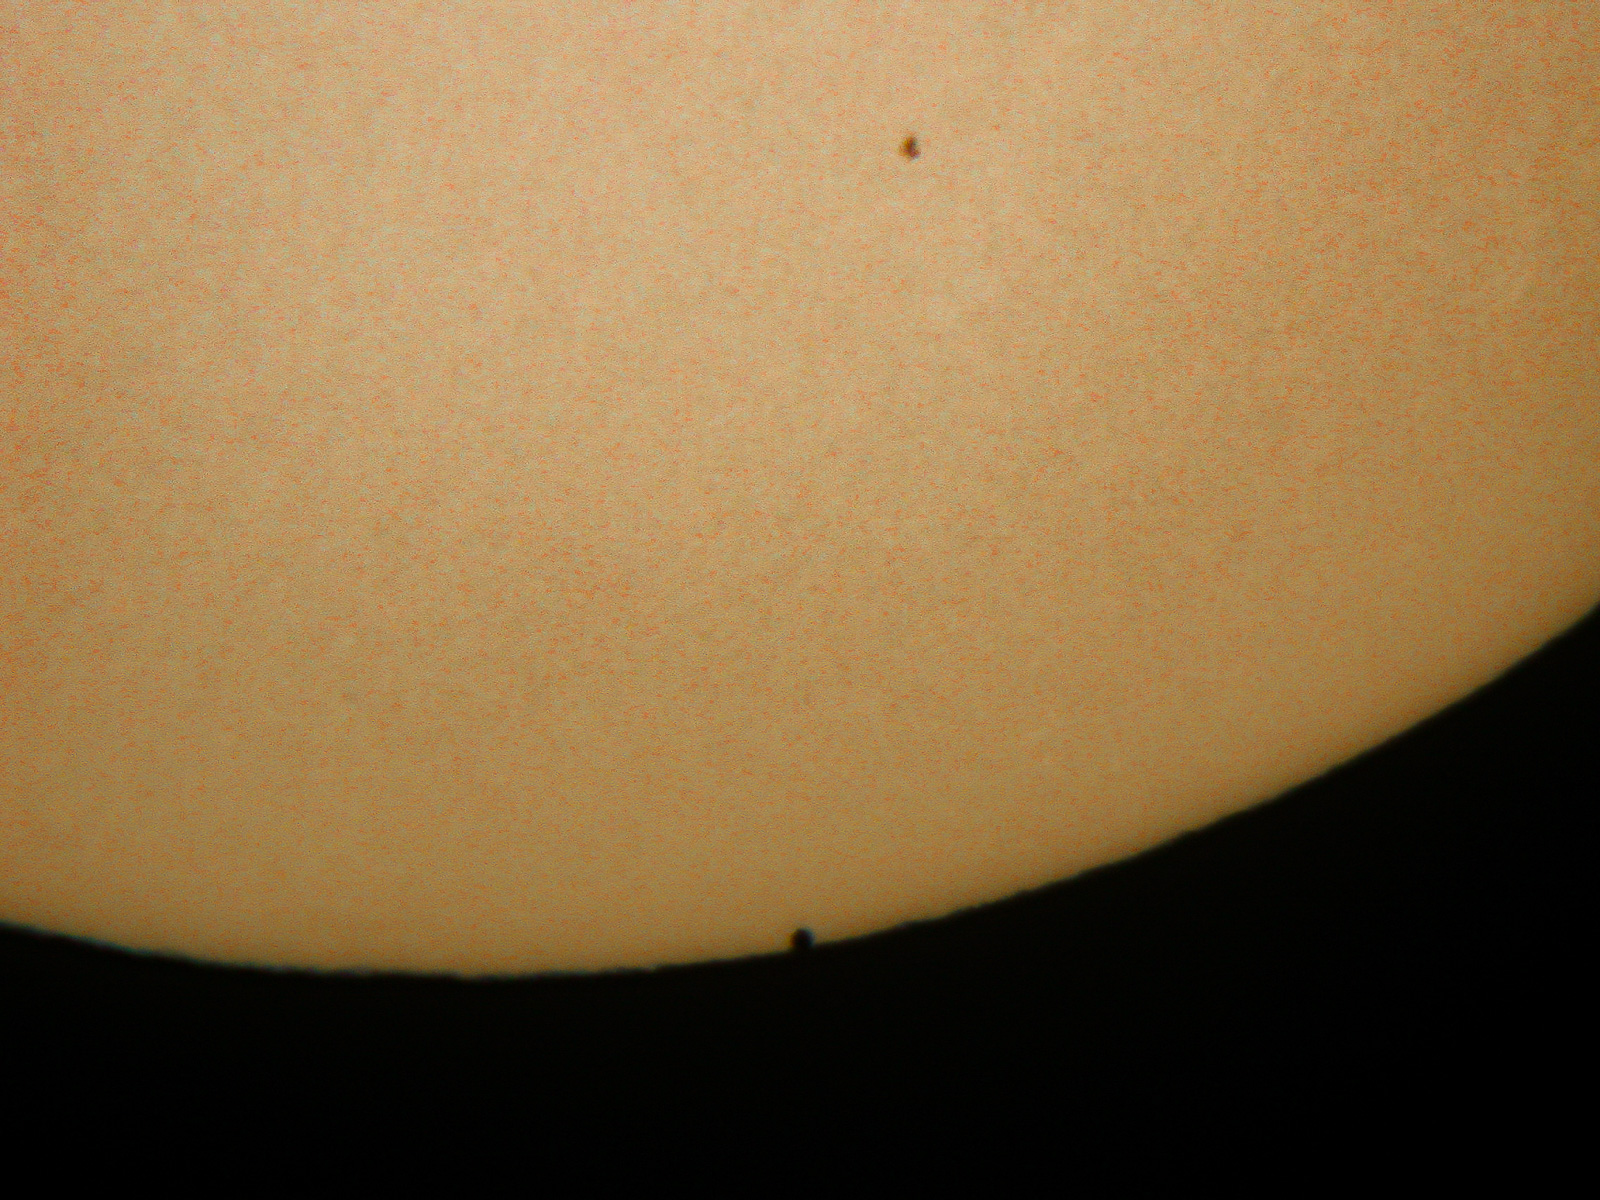 The disc of mercury starts to become visible against the sun.